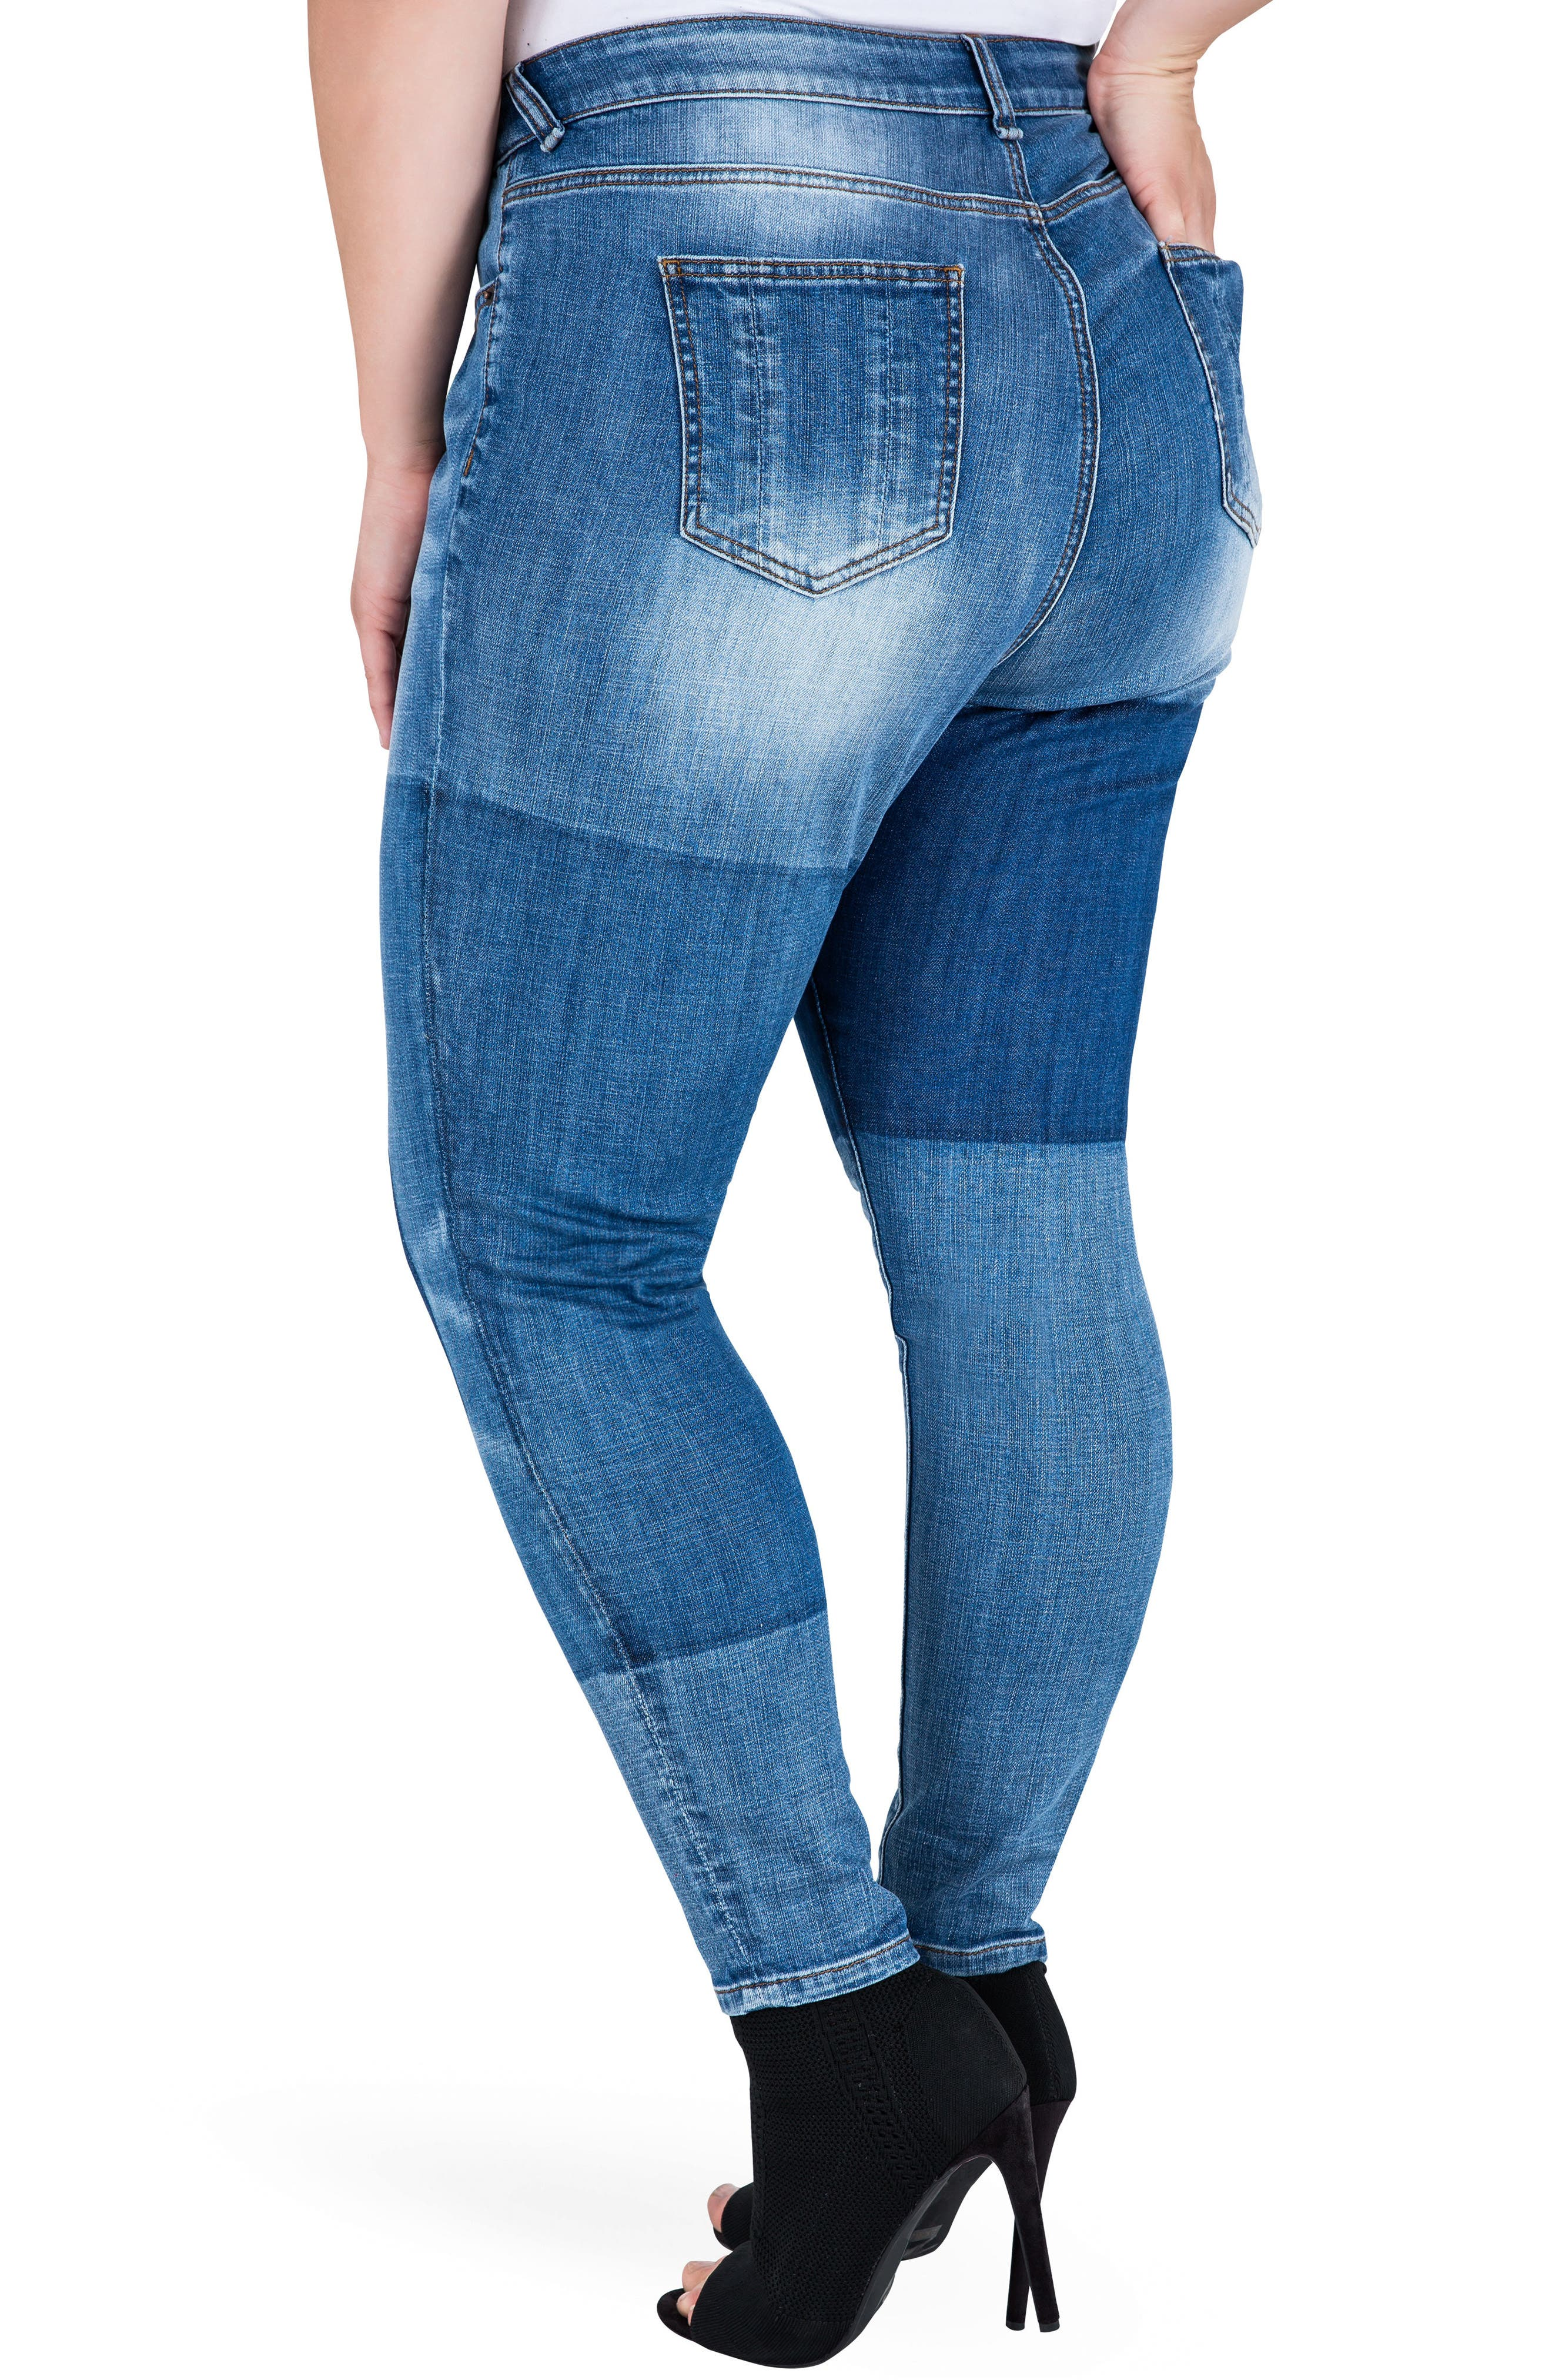 Isabel Colorblock Skinny Jeans,                             Alternate thumbnail 3, color,                             Periwinkle